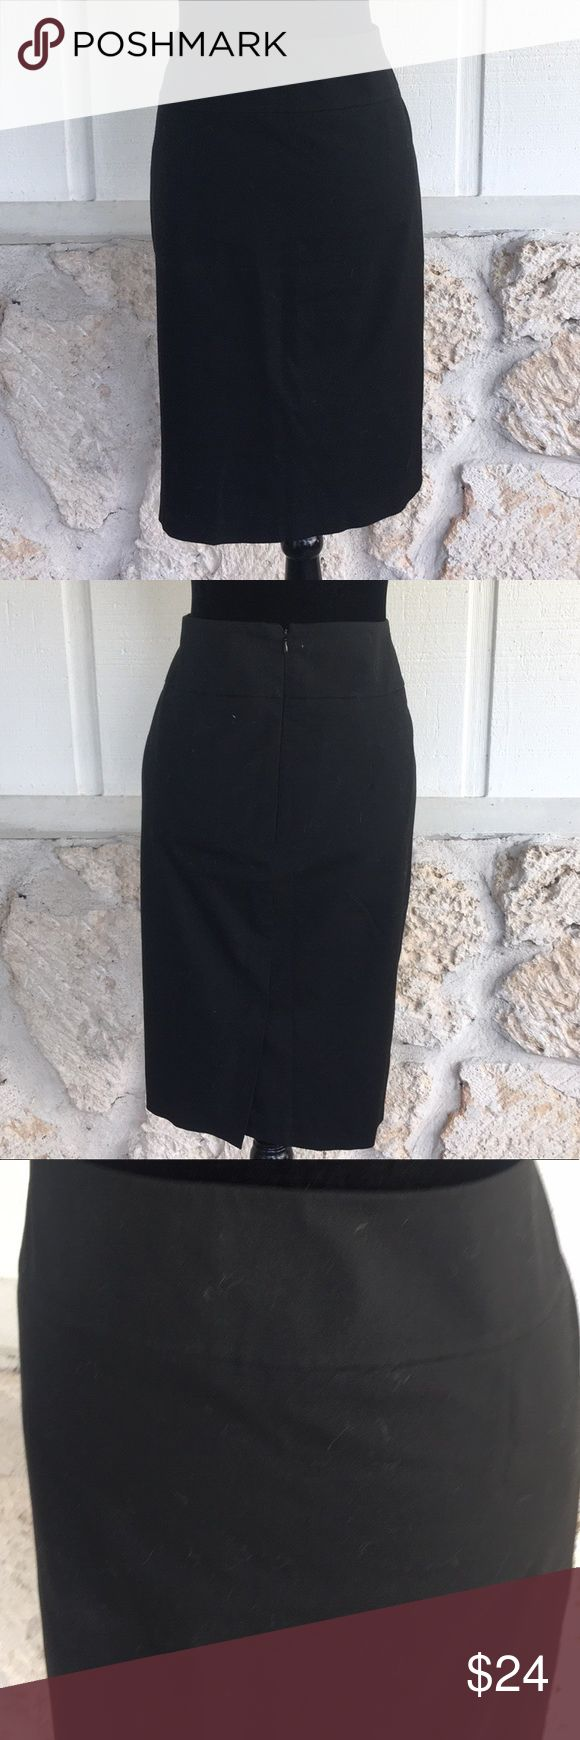 """Mossimo black stretch pencil skirt Mossimo black stretch pencil skirt.  Back zipper and hook and eye closure. 6.5"""" slit in center back at hemline. EUC  measurements: waist measured laying flat side to side 18""""length from waist to hemline 24""""  ✅I ship same or next day ✅Bundle for discount Mossimo Supply Co. Skirts Pencil"""